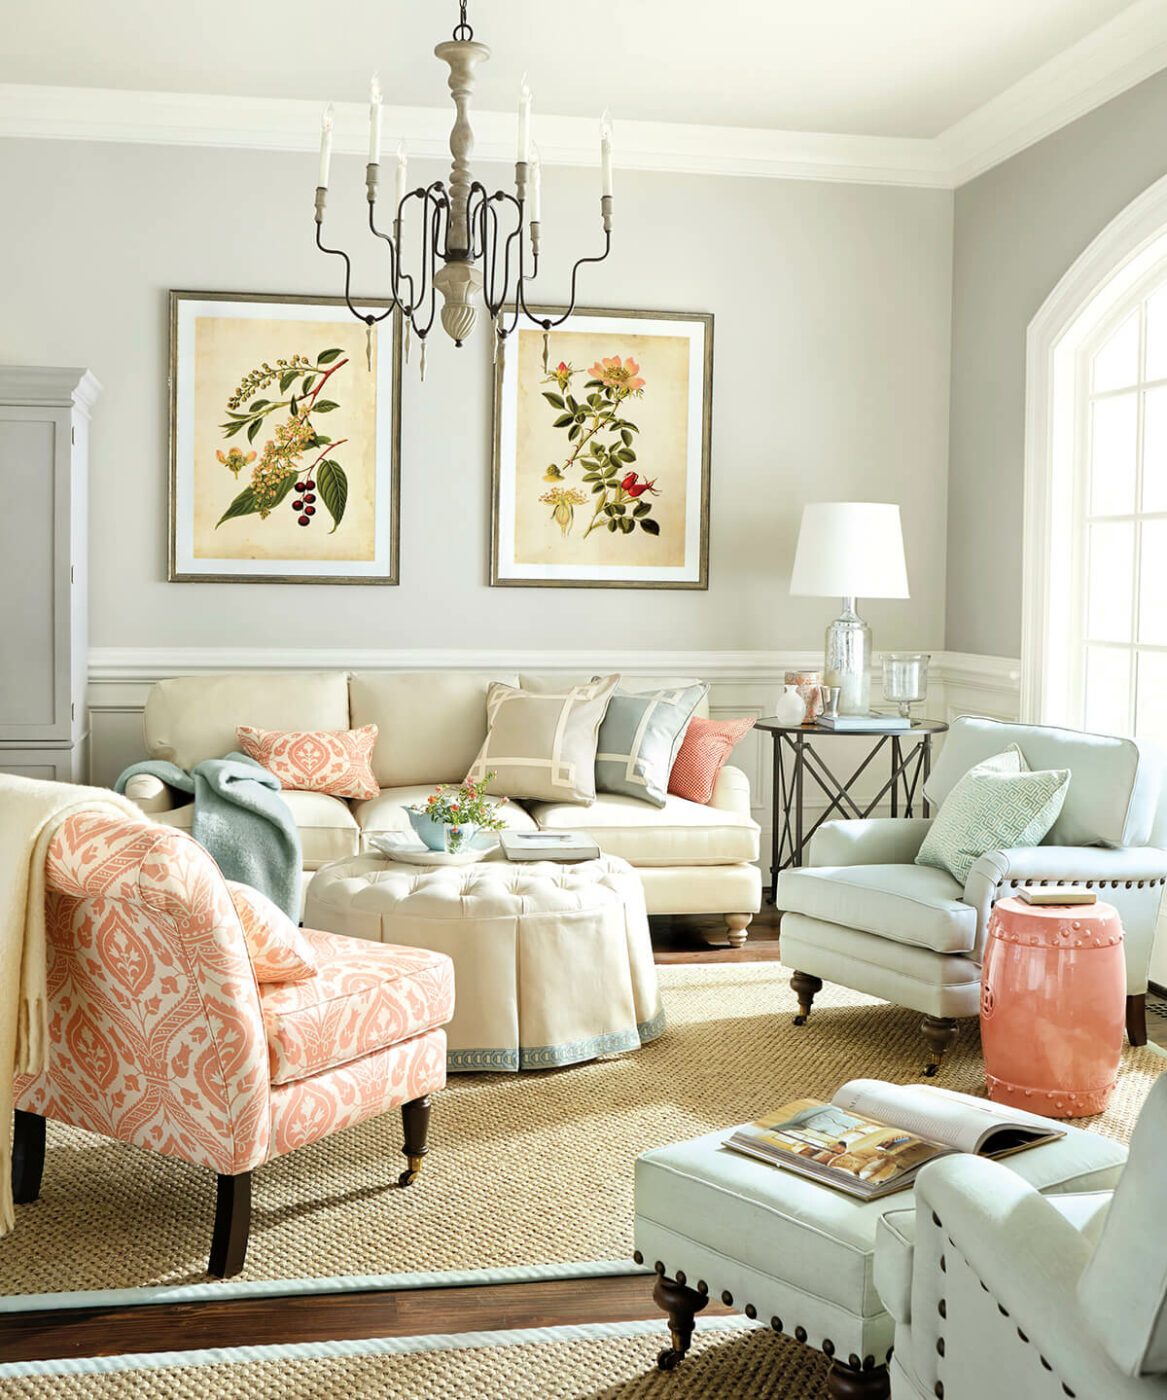 English Parlor Botanica Wall Prints